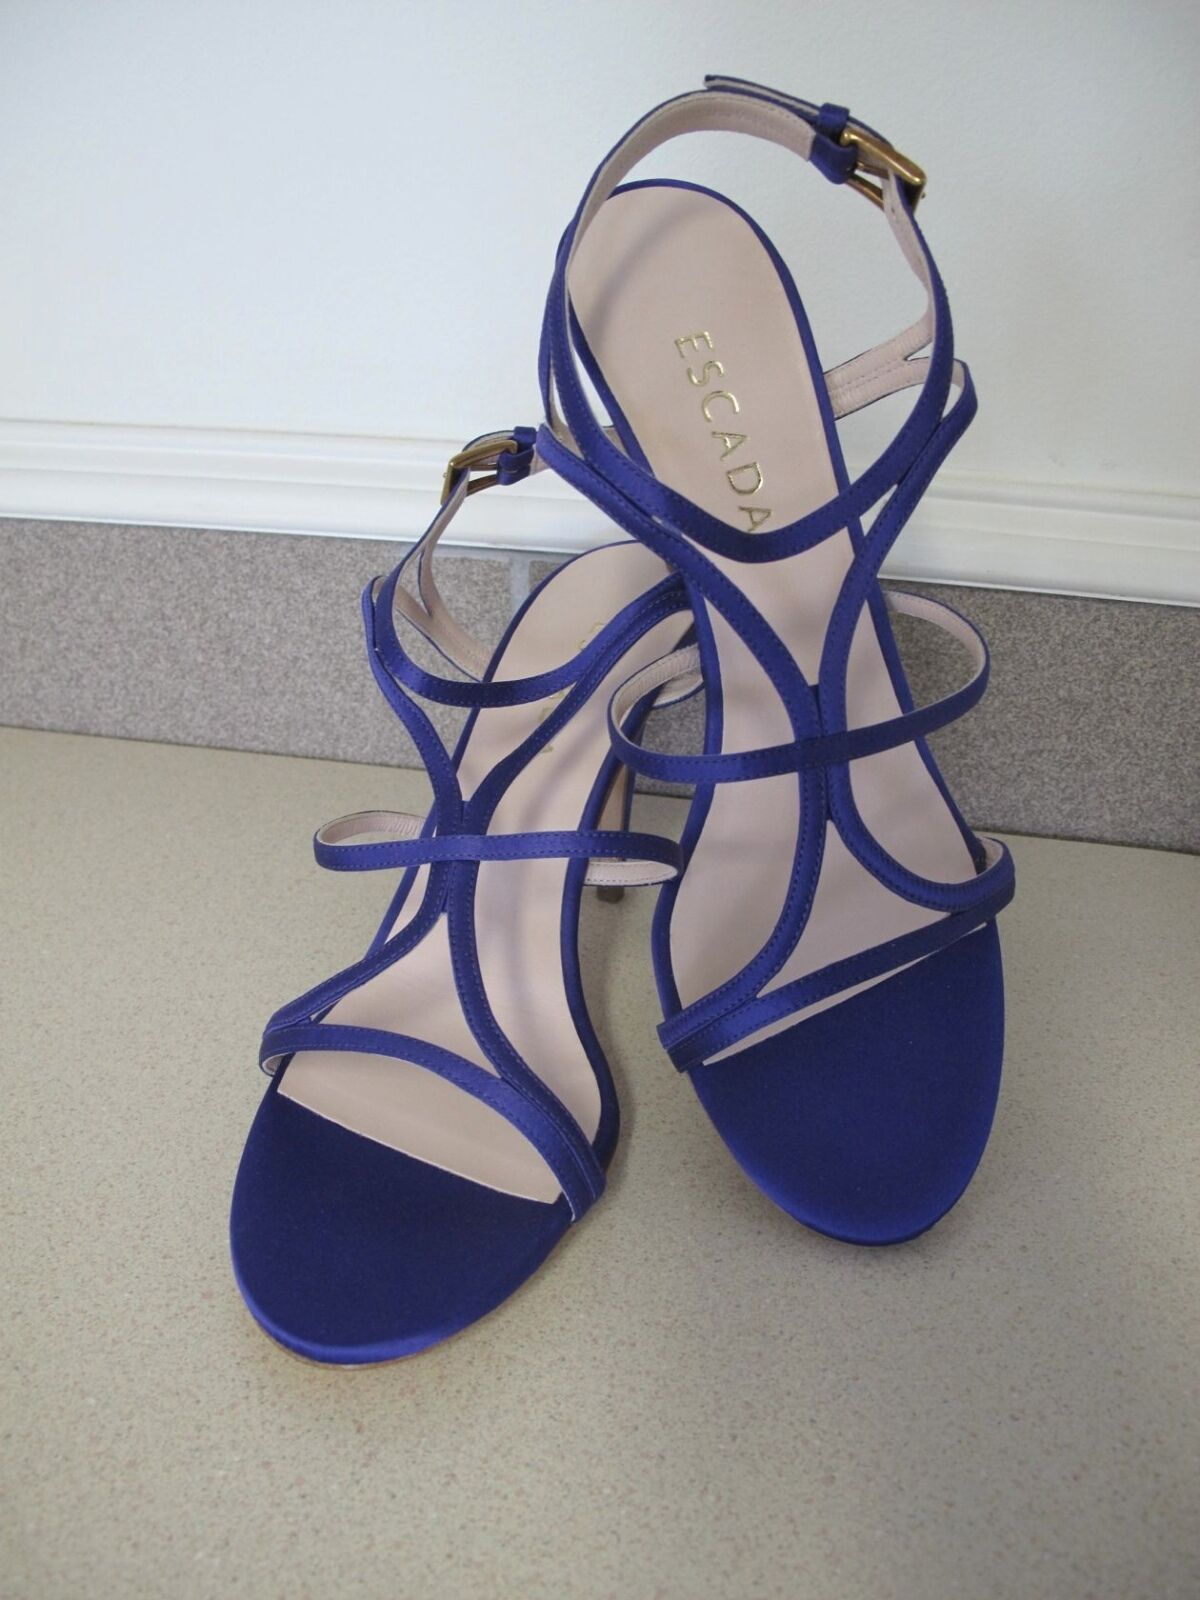 Women's ESCADA Sandals Shoes Deep Purple Satin Strappy sz sz Strappy 9.5 made Italy New Box 696c9f